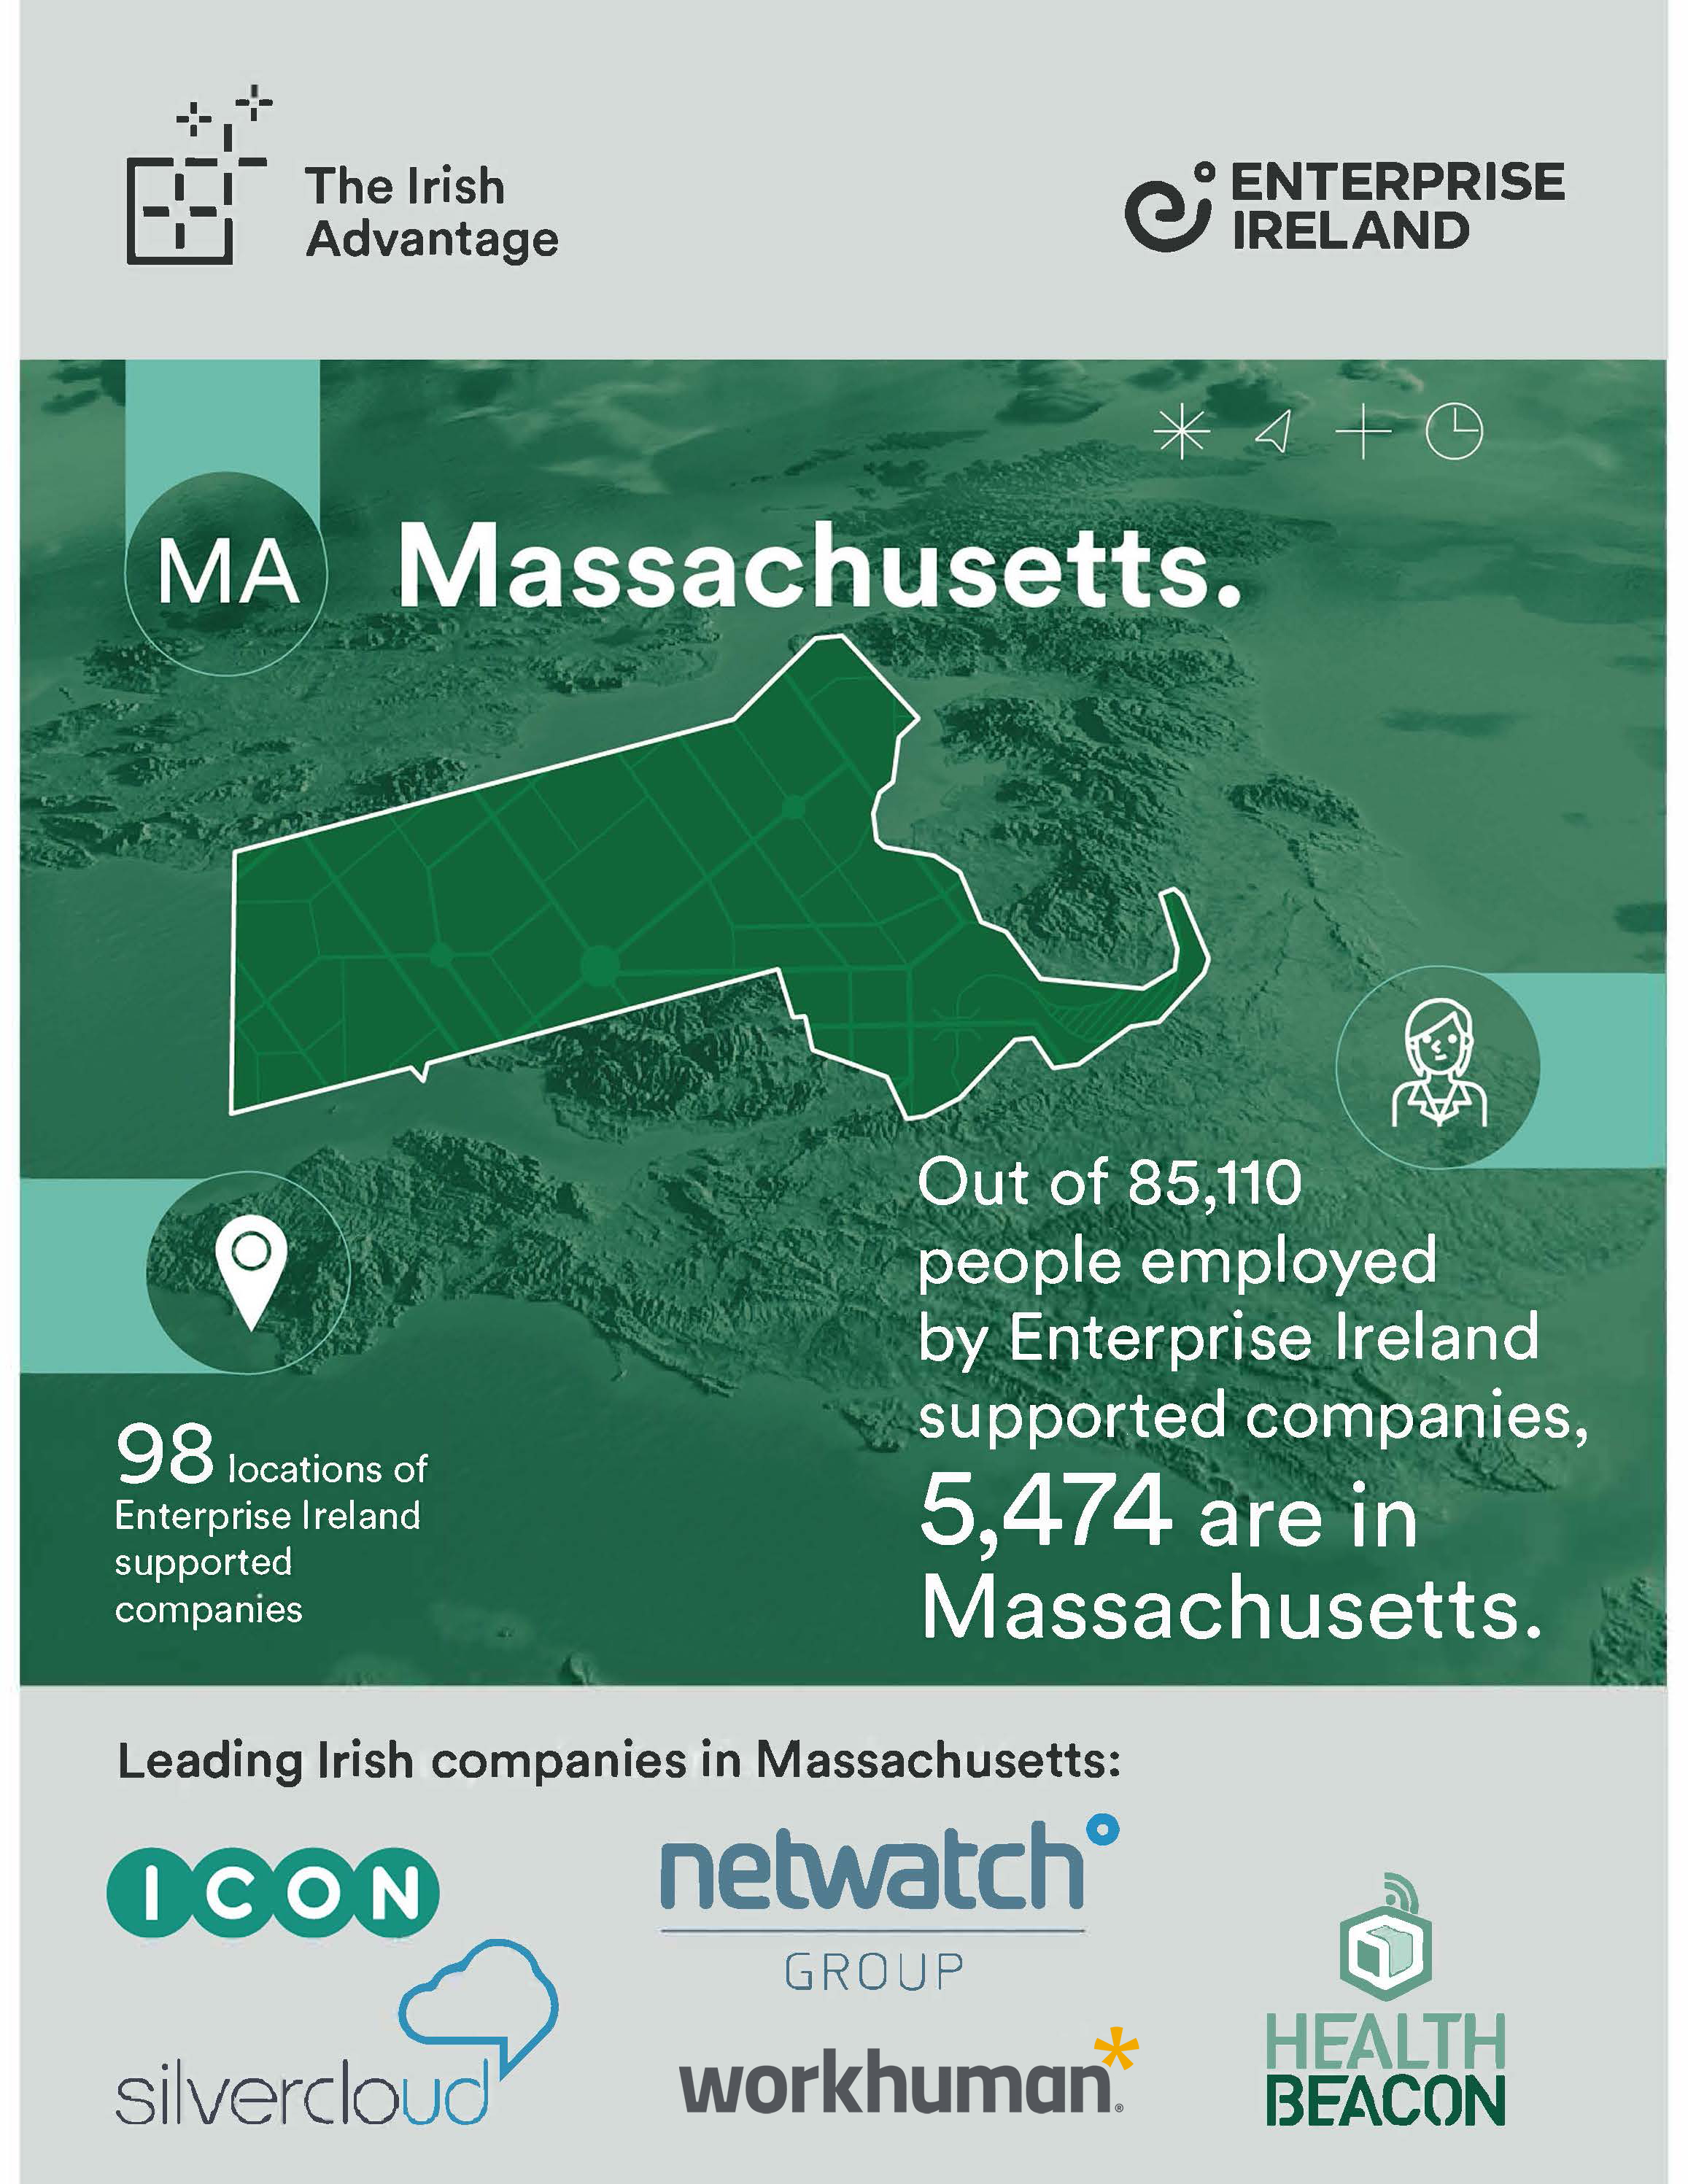 Massachusetts now home to nearly 5,500 of nation's 85,000 Enterprise Ireland supported jobs